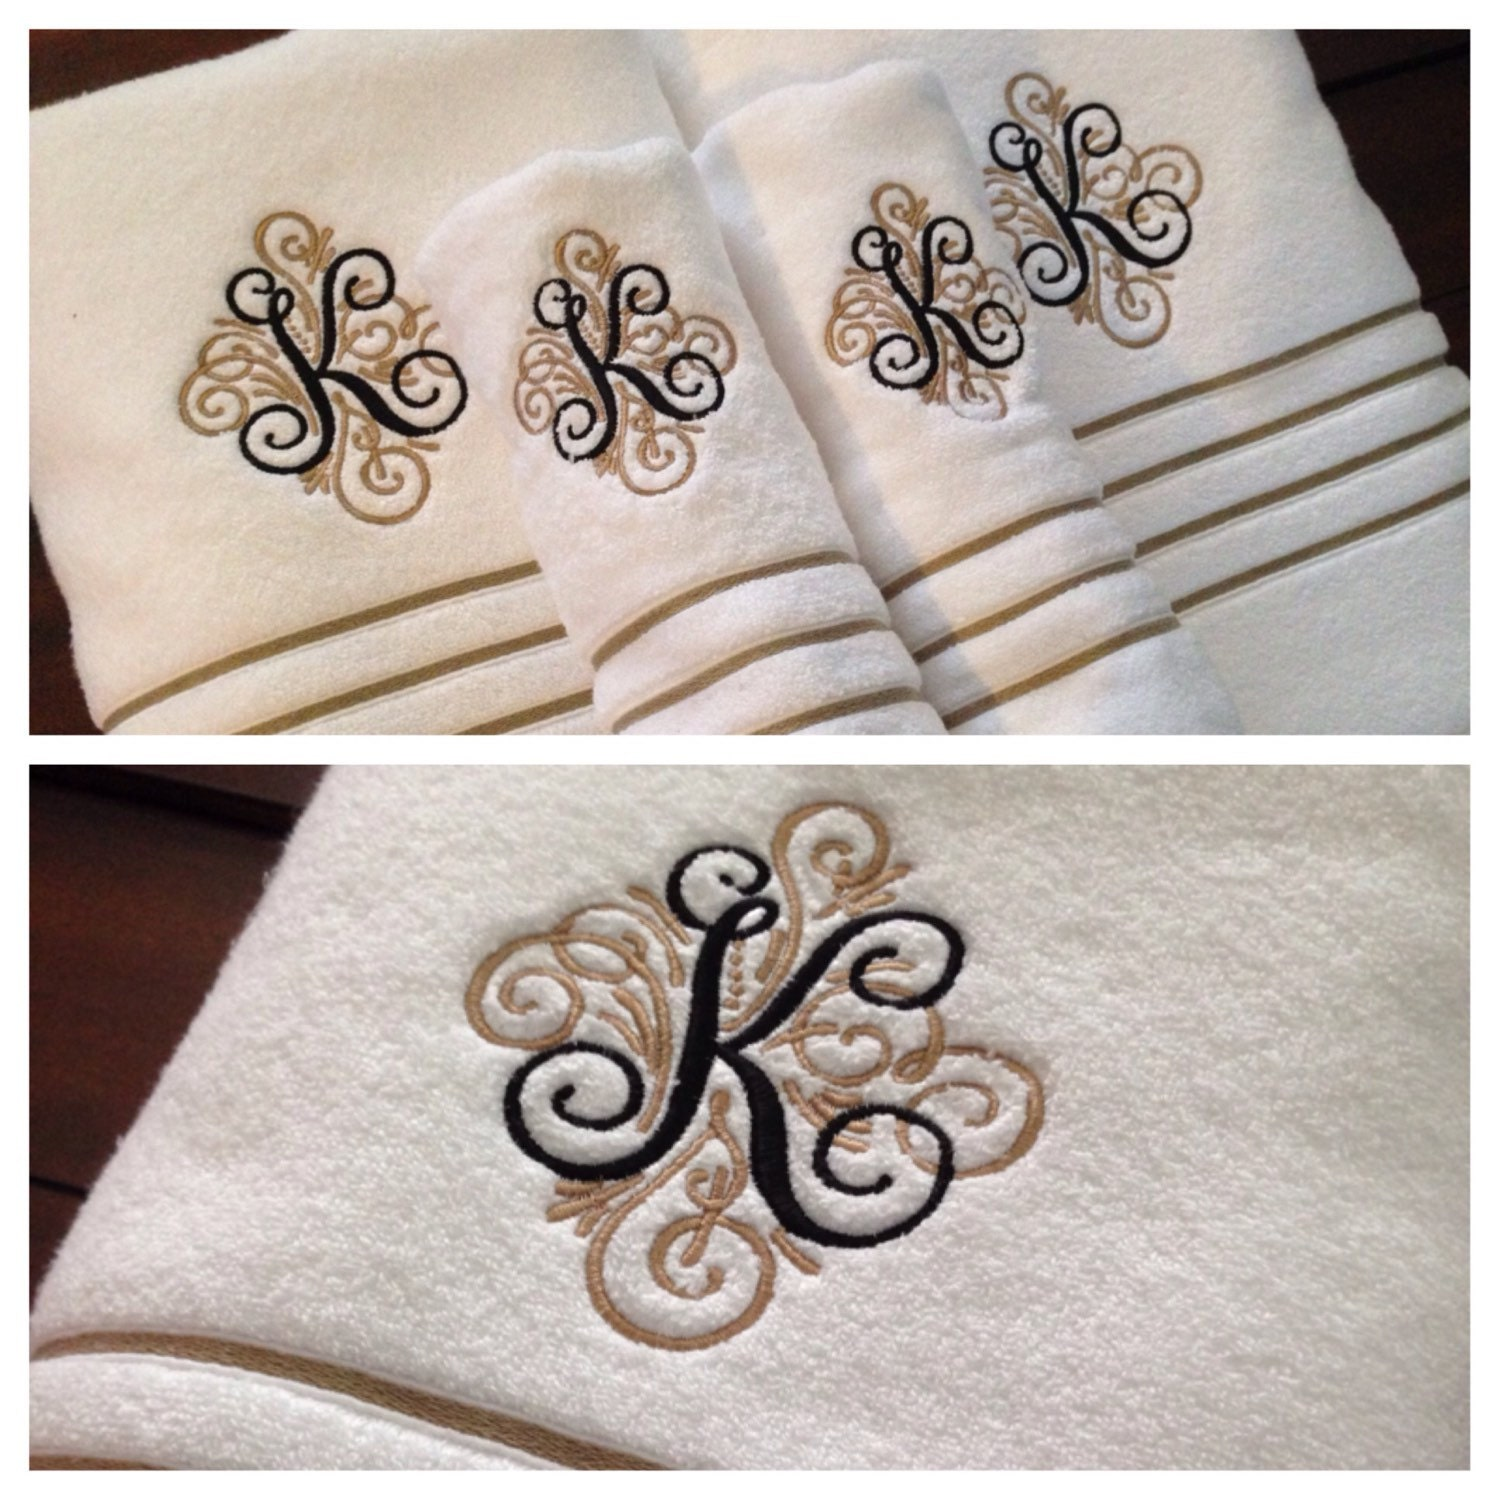 Monogram Towels For Bathroom: Monogrammed Luxury Bath Towels Bath Sheets & Hand By